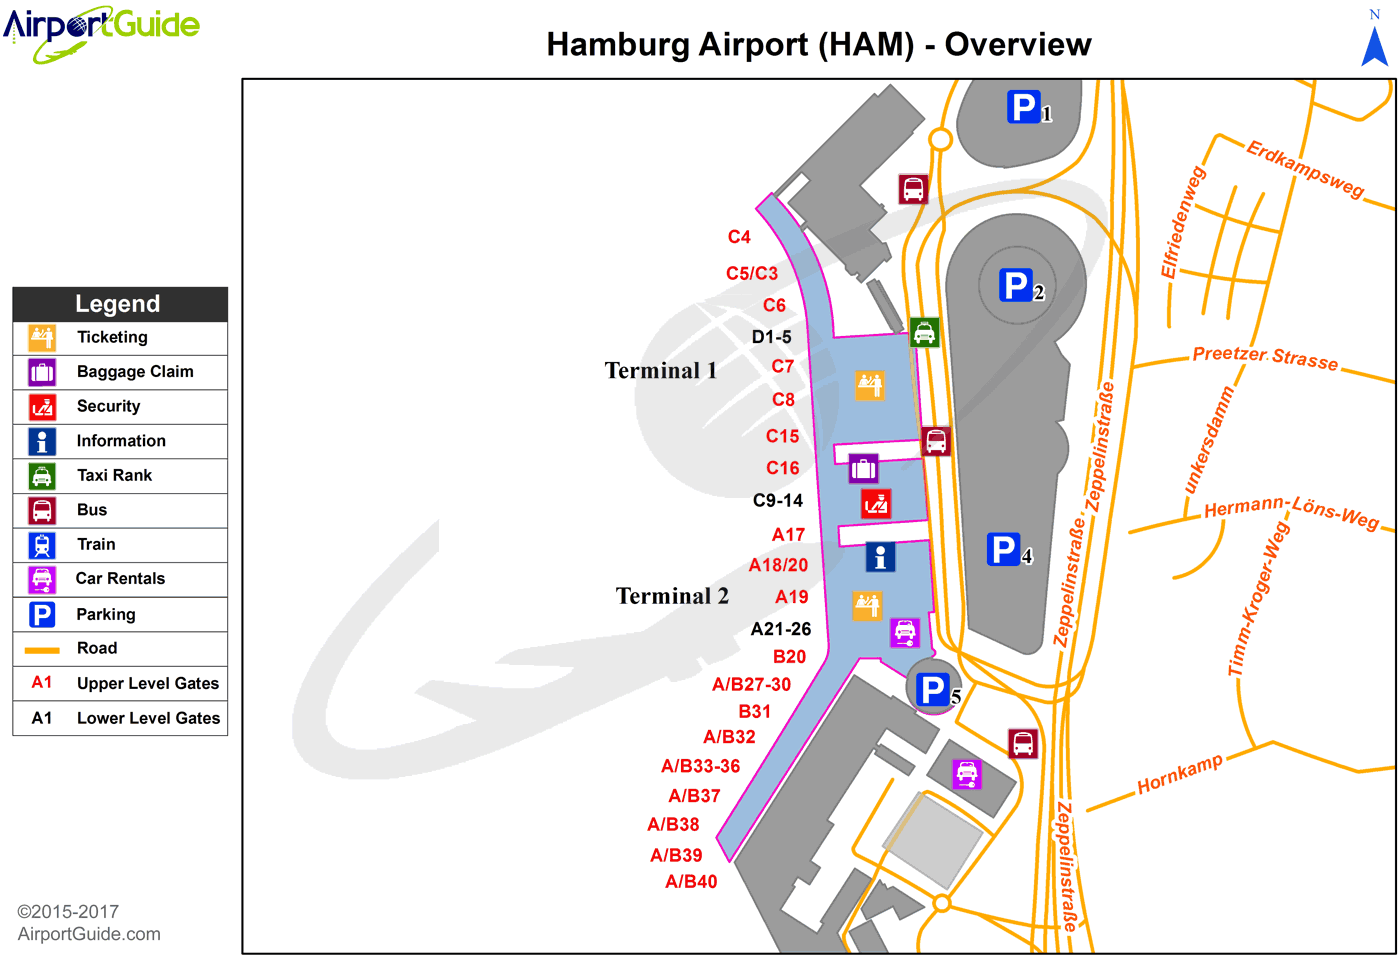 Hamburg - Hamburg (HAM) Airport Terminal Map - Overview